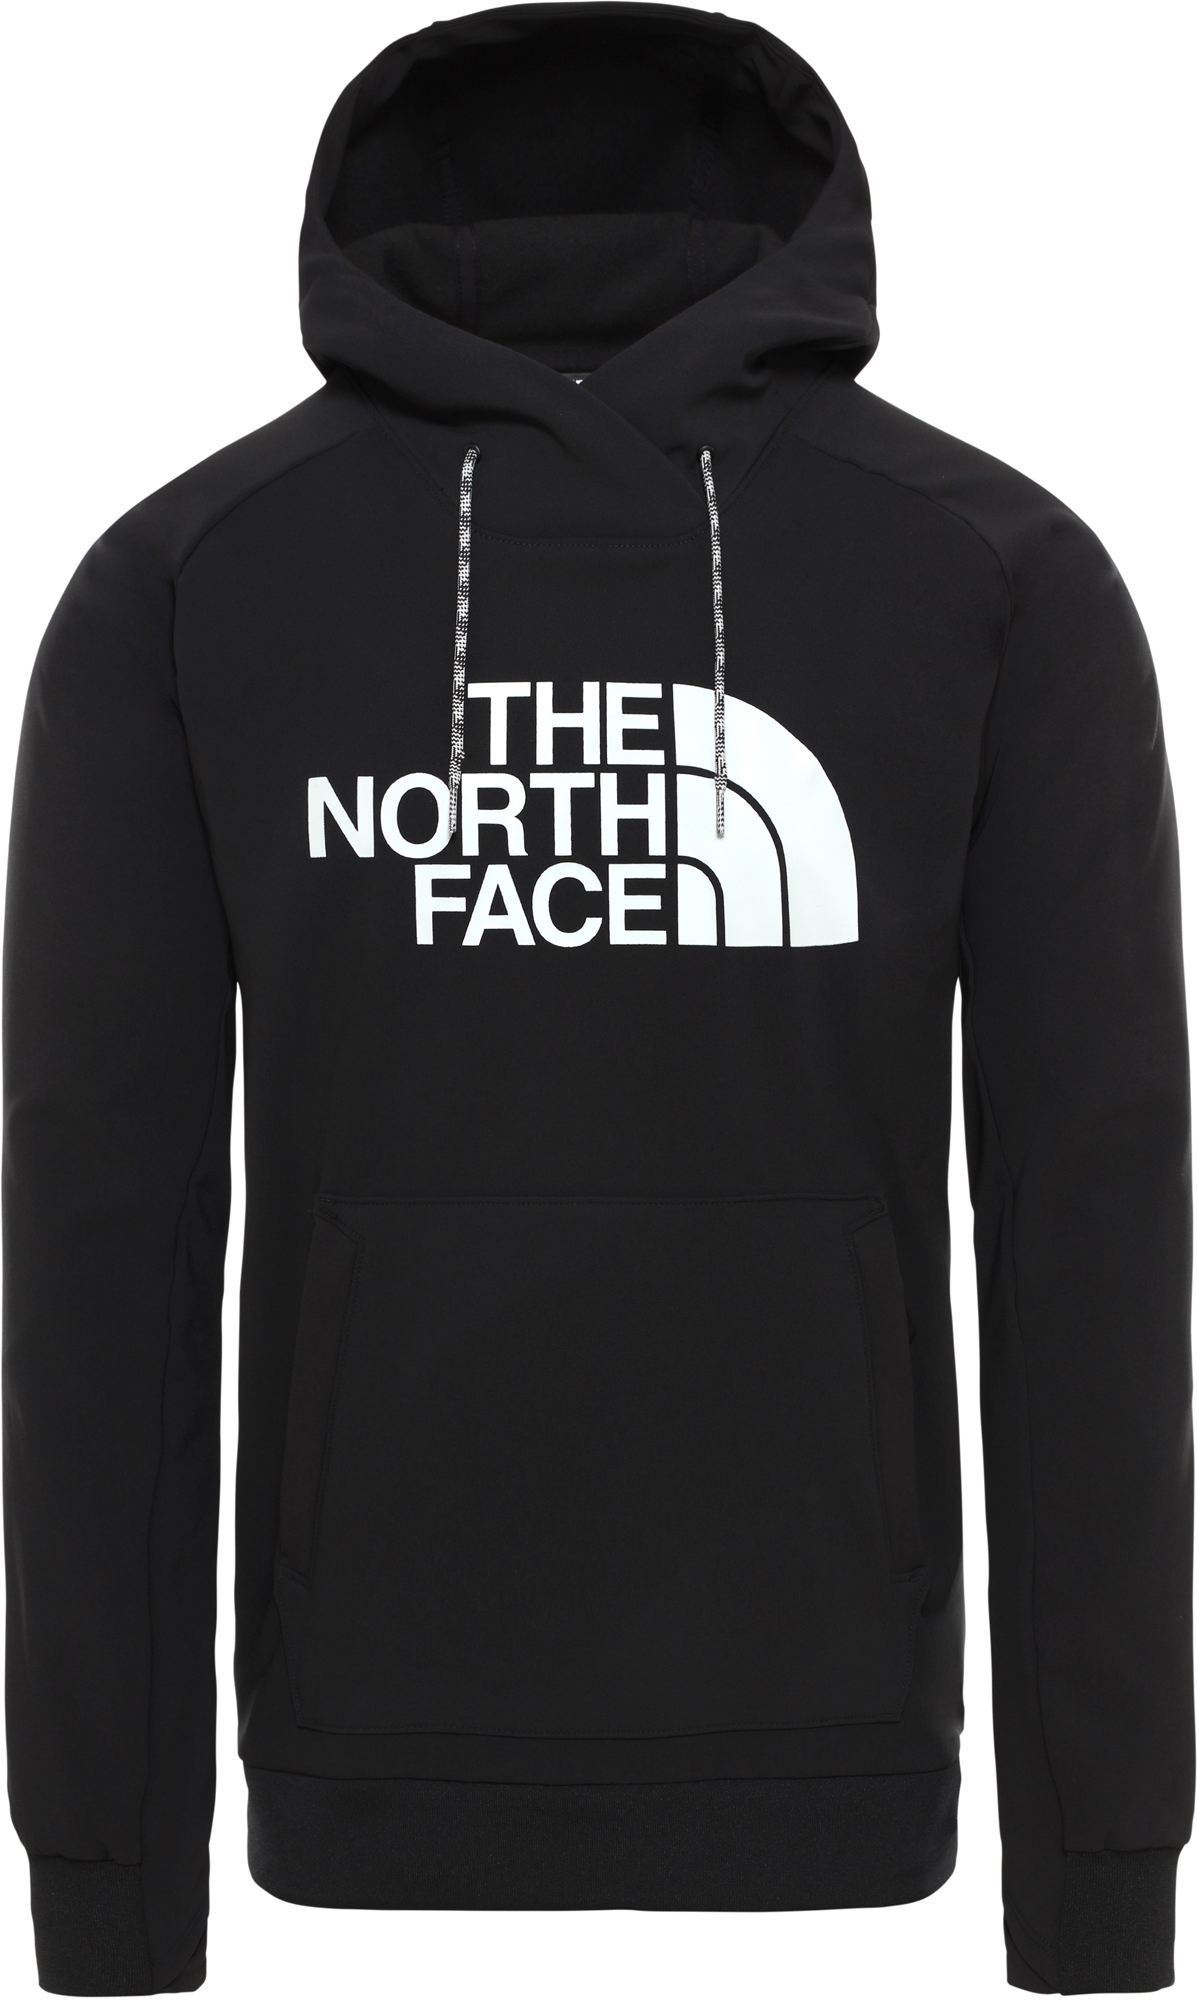 цена на The North Face Худи мужская The North Face Tekno Logo, размер 52